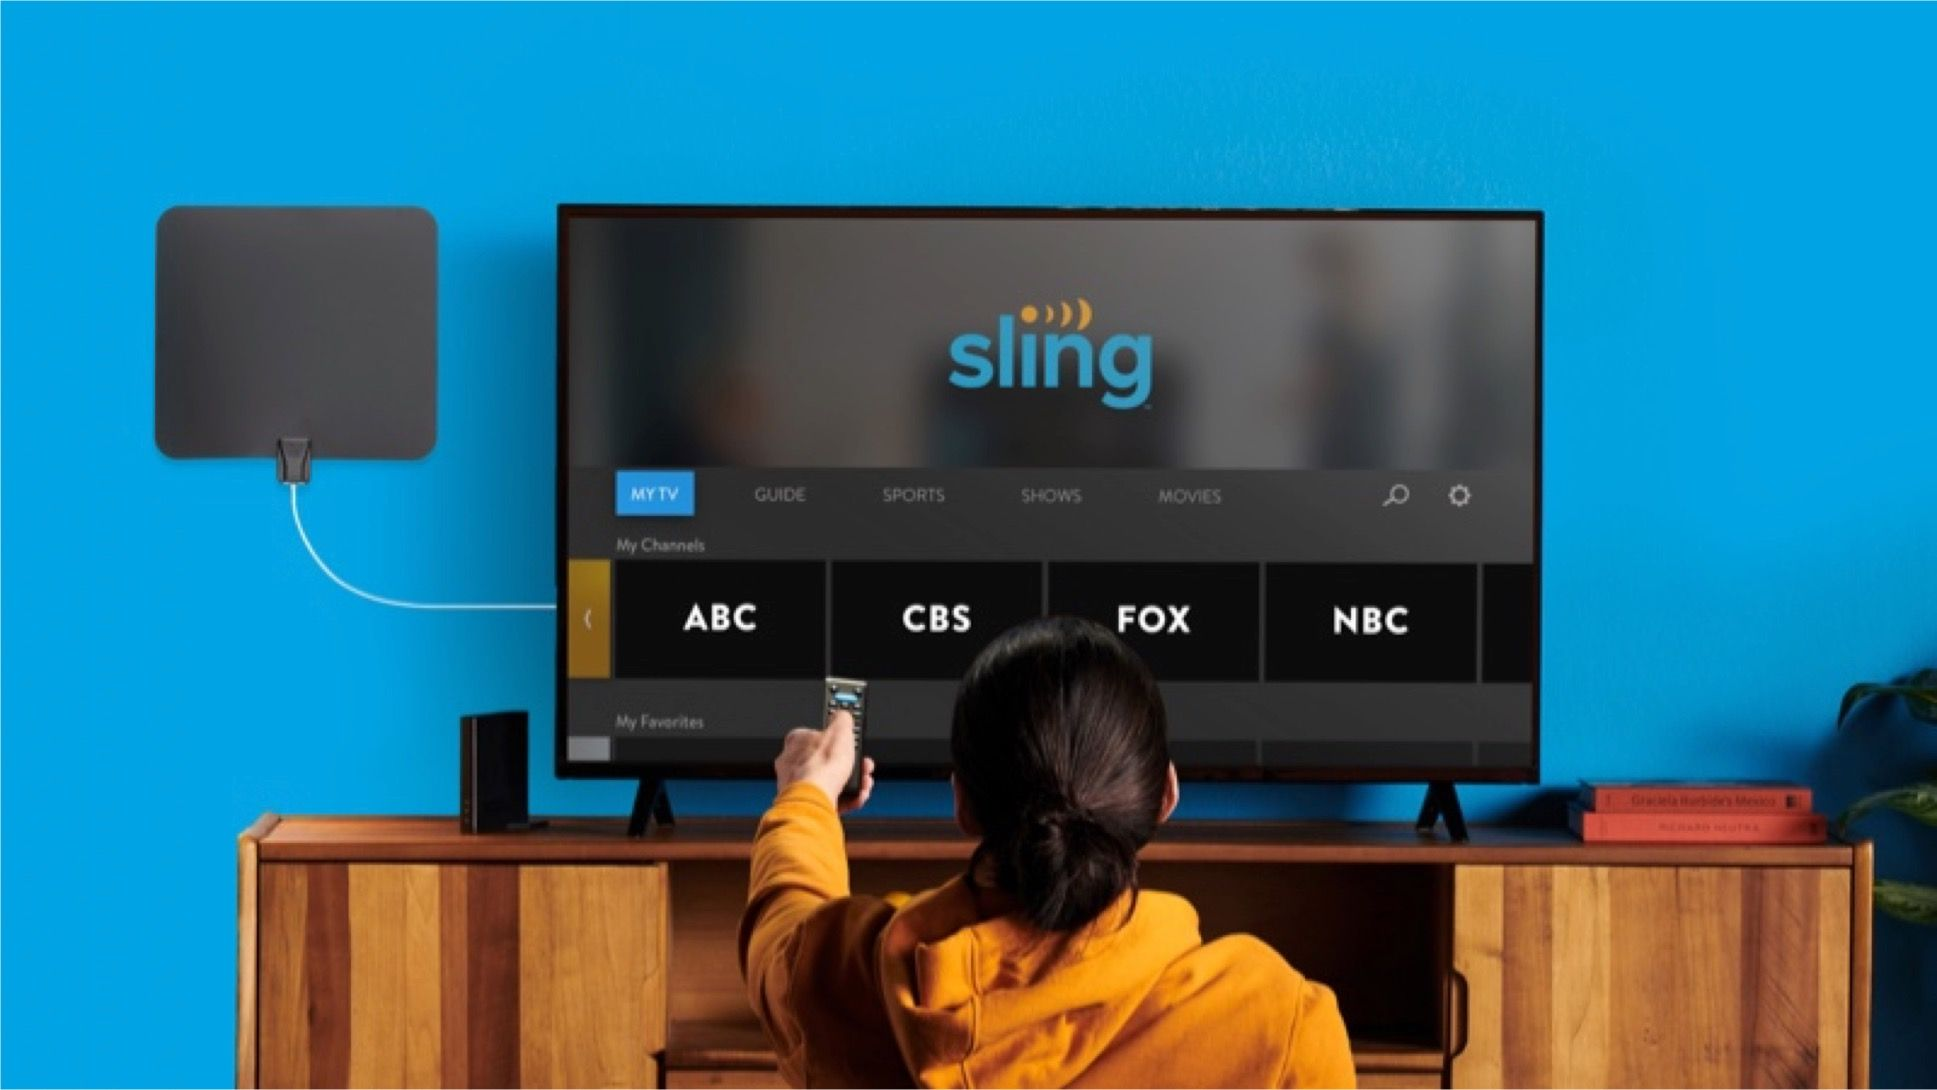 Lg Smart Tv Customers Can Now Add Local Channels To Sling Tv In 2020 Sling Tv Smart Tv Tv App